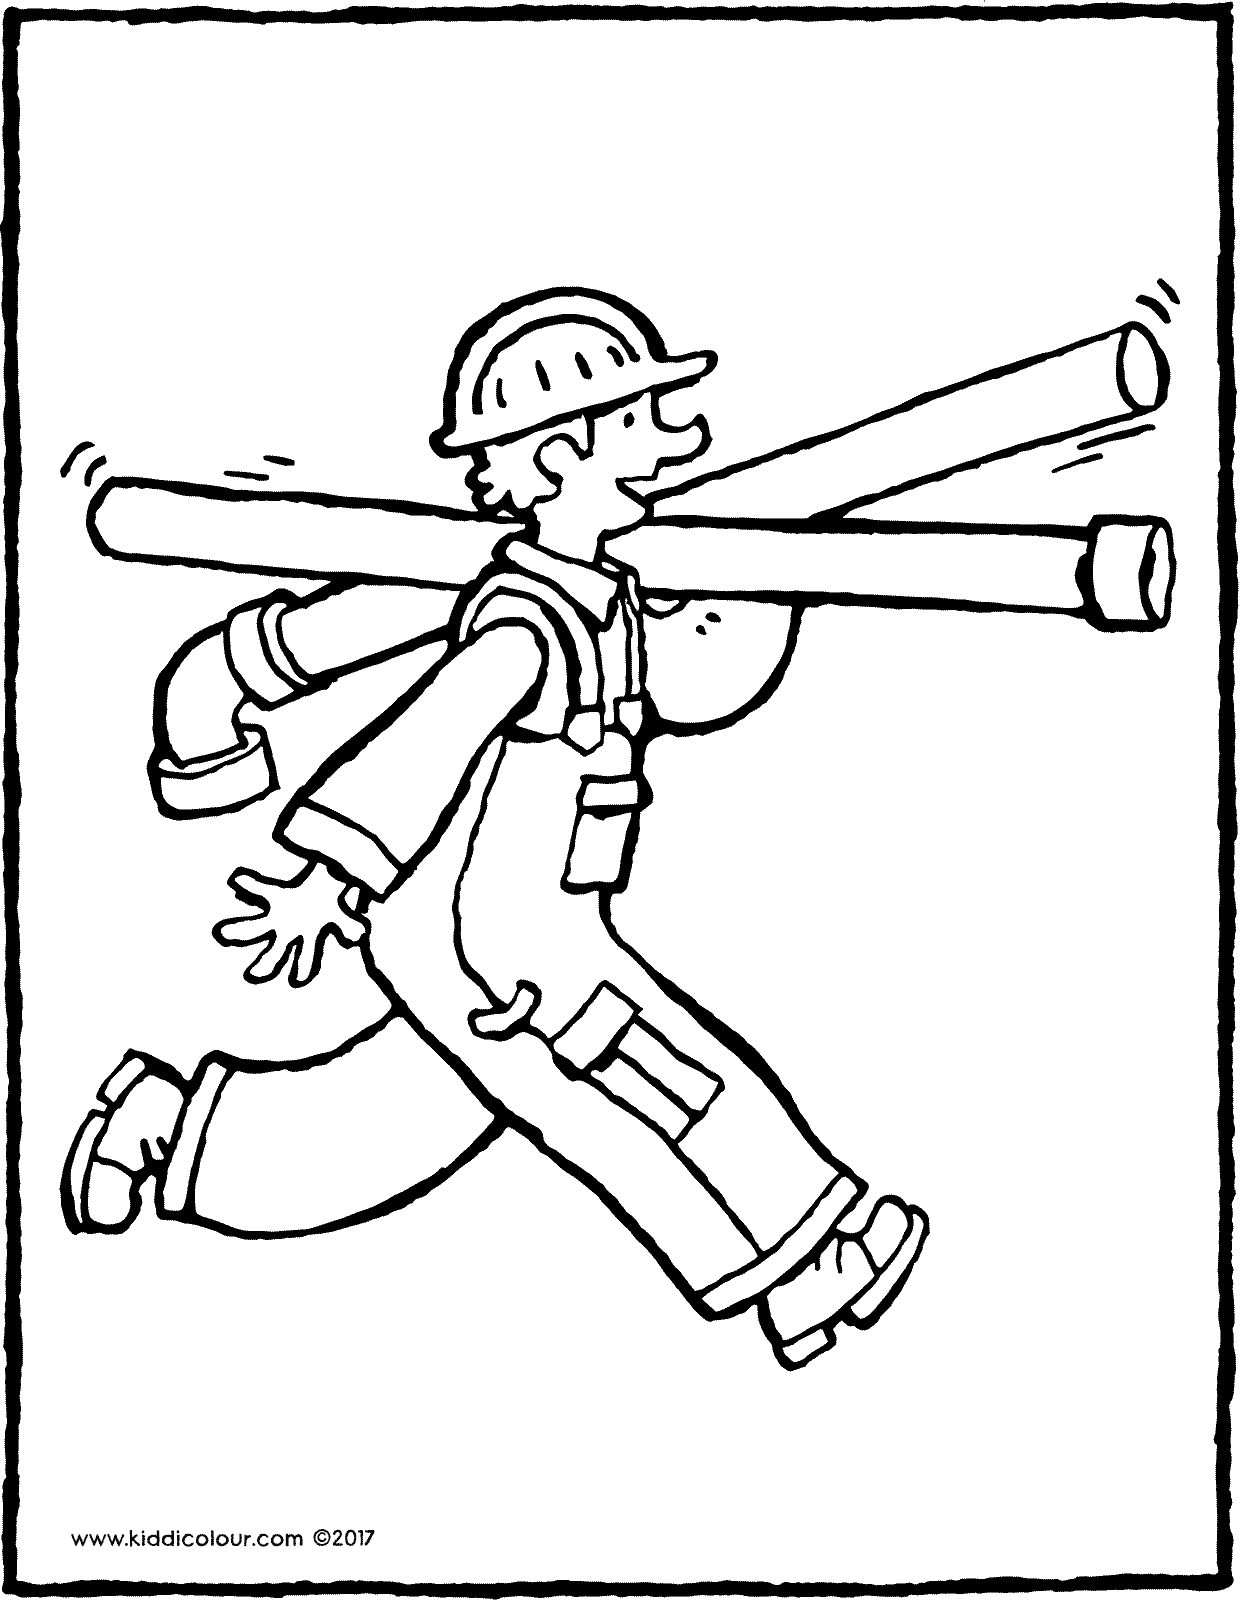 workman colouring page drawing picture 01V